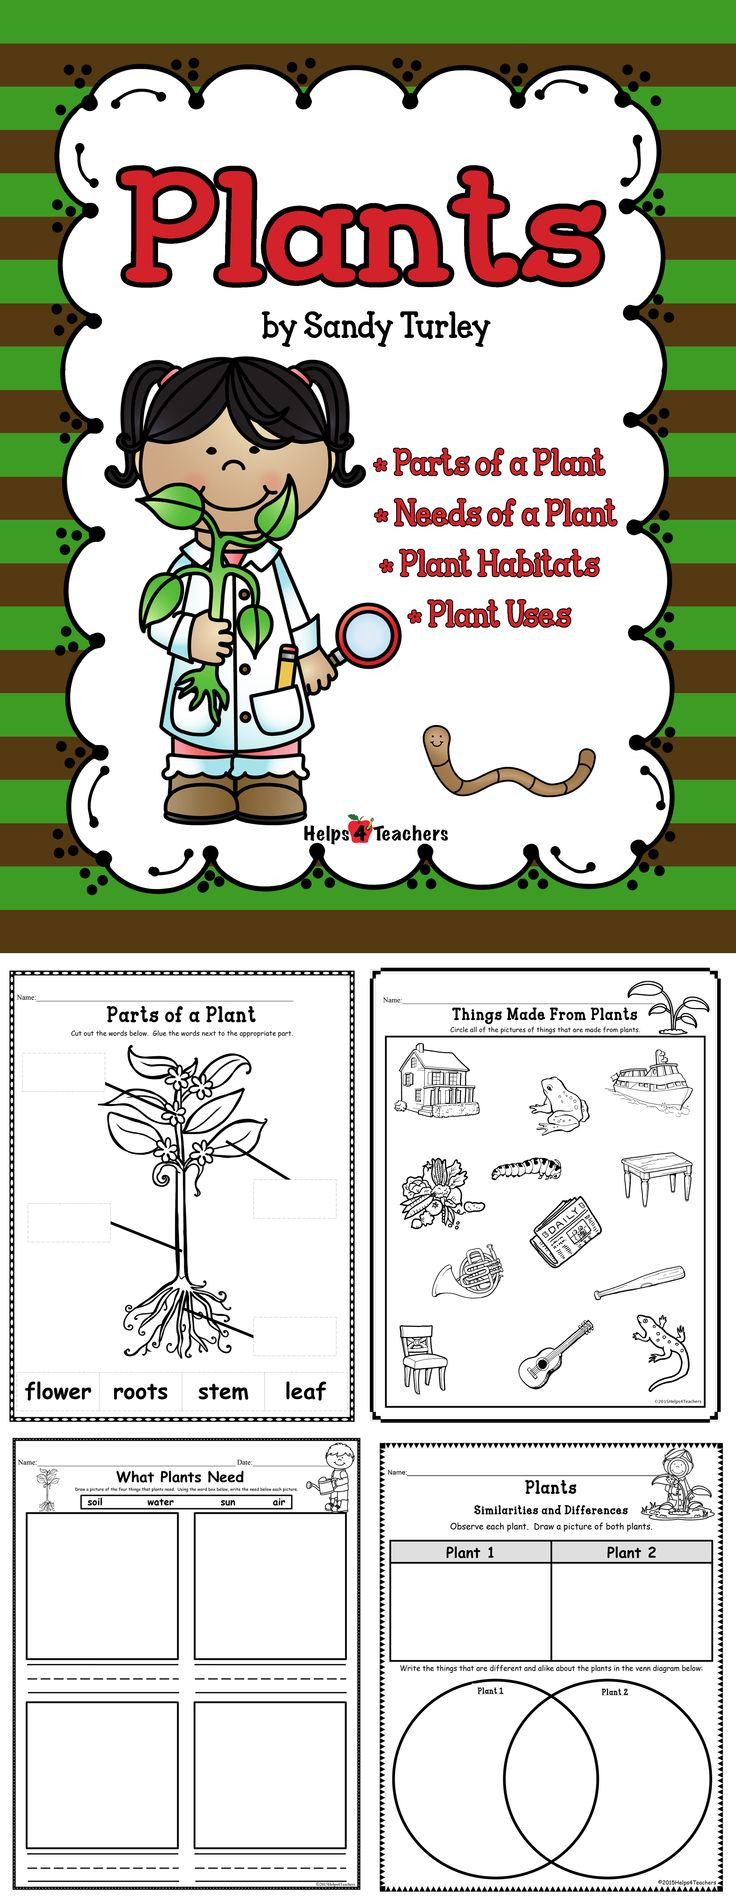 $ AWESOME! 8 pages. This packet includes 8 activity pages that will enhance the teaching of the following plant topics: - Things Made From Plants - Needs of a Plant - Parts of a Plant - Jobs of the Parts of a Plant - Where Plants are Found (Plant habitats) - Foods That Come From Plants - Observation of Two Plants: Similarities and Differences